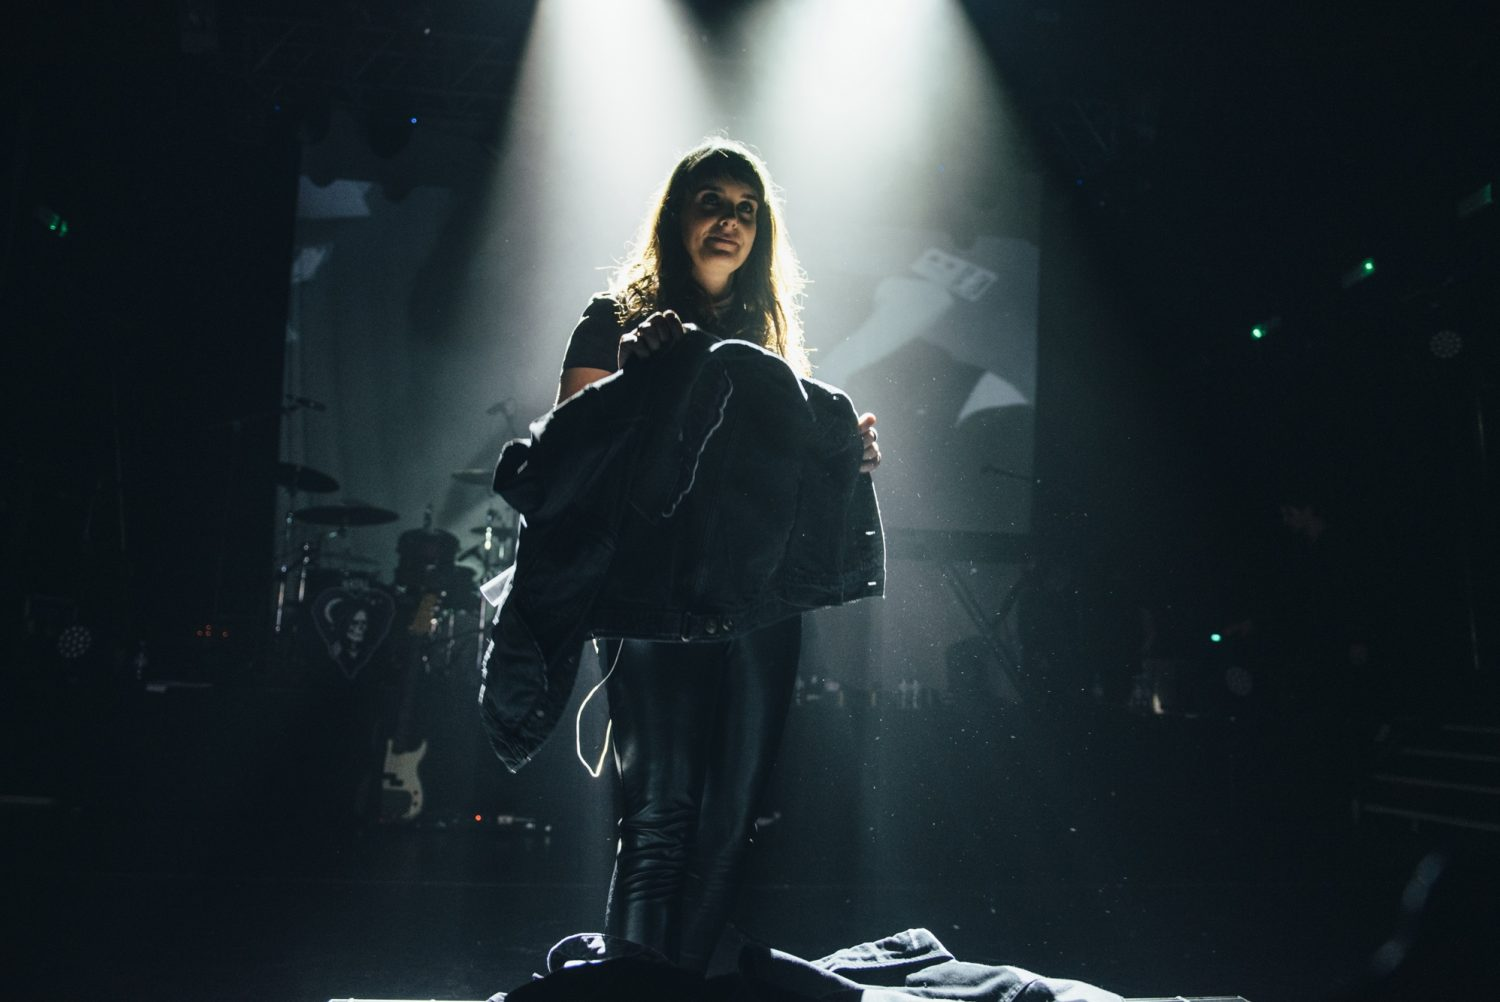 The Callous Heart beats louder than ever as Creeper wave goodbye at London's KOKO